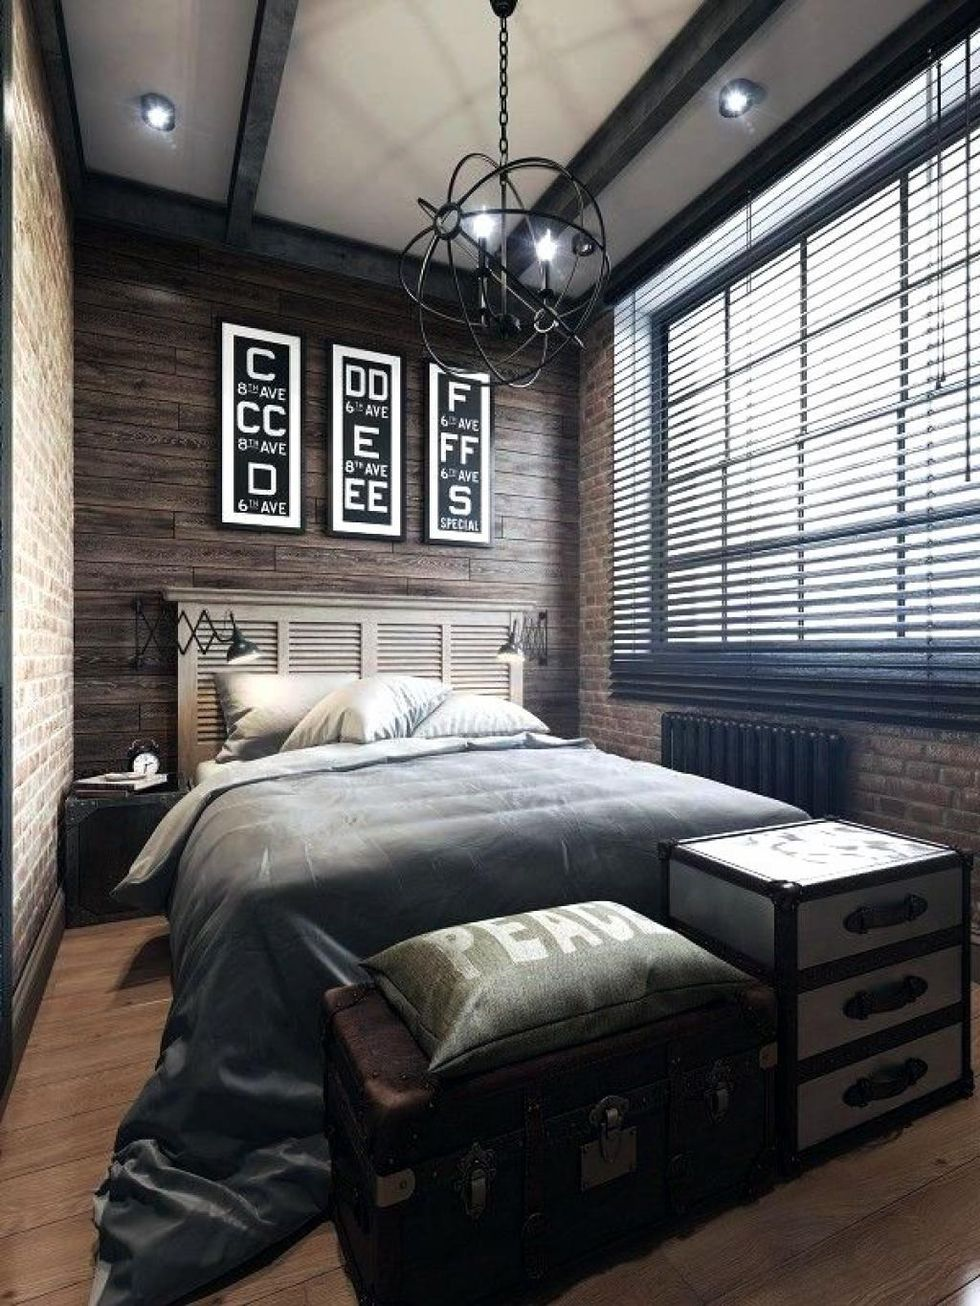 Cool modern bedroom design ideas 25  Hoommycom